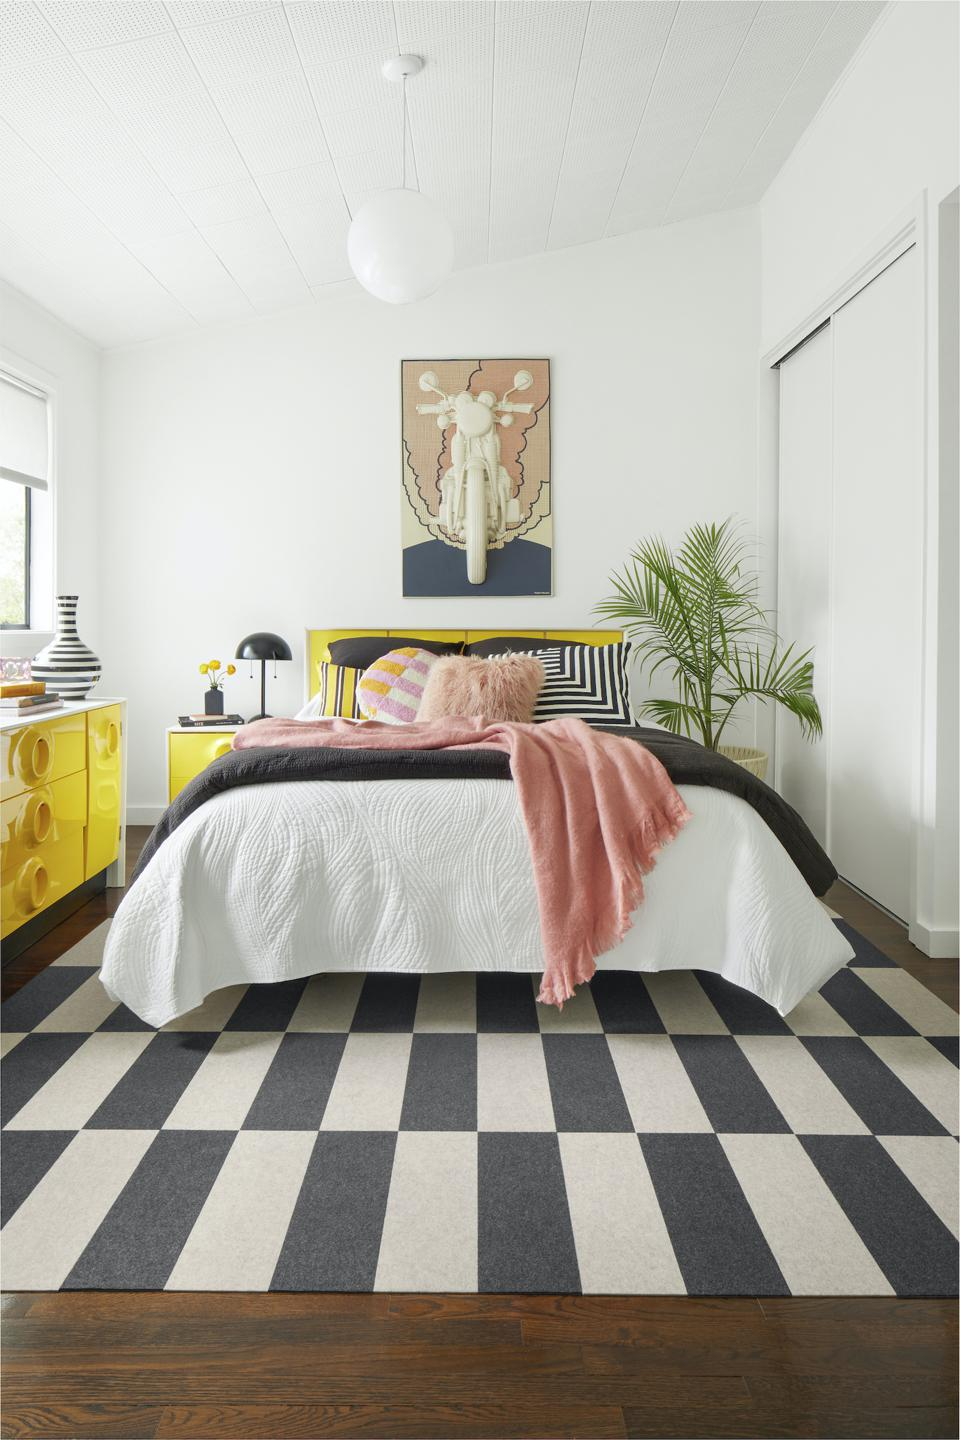 Alternating colors in this checkerboard design from FLOR makes an interesting area rug in the bedroom.